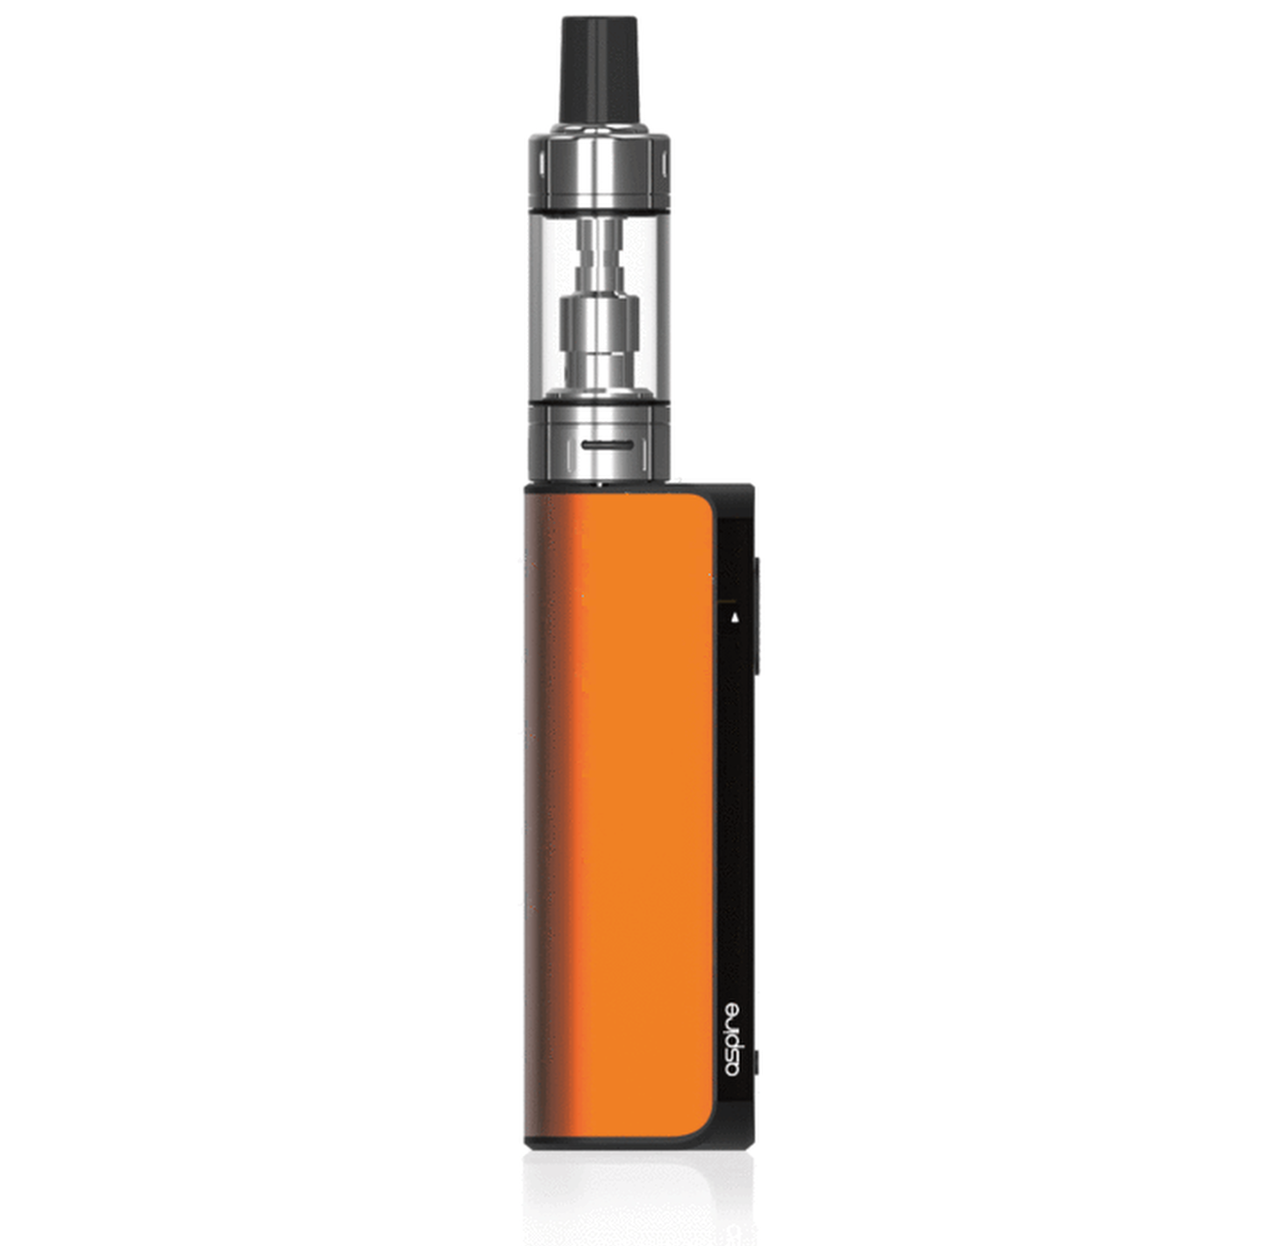 K Lite Kit By Aspire orange UK